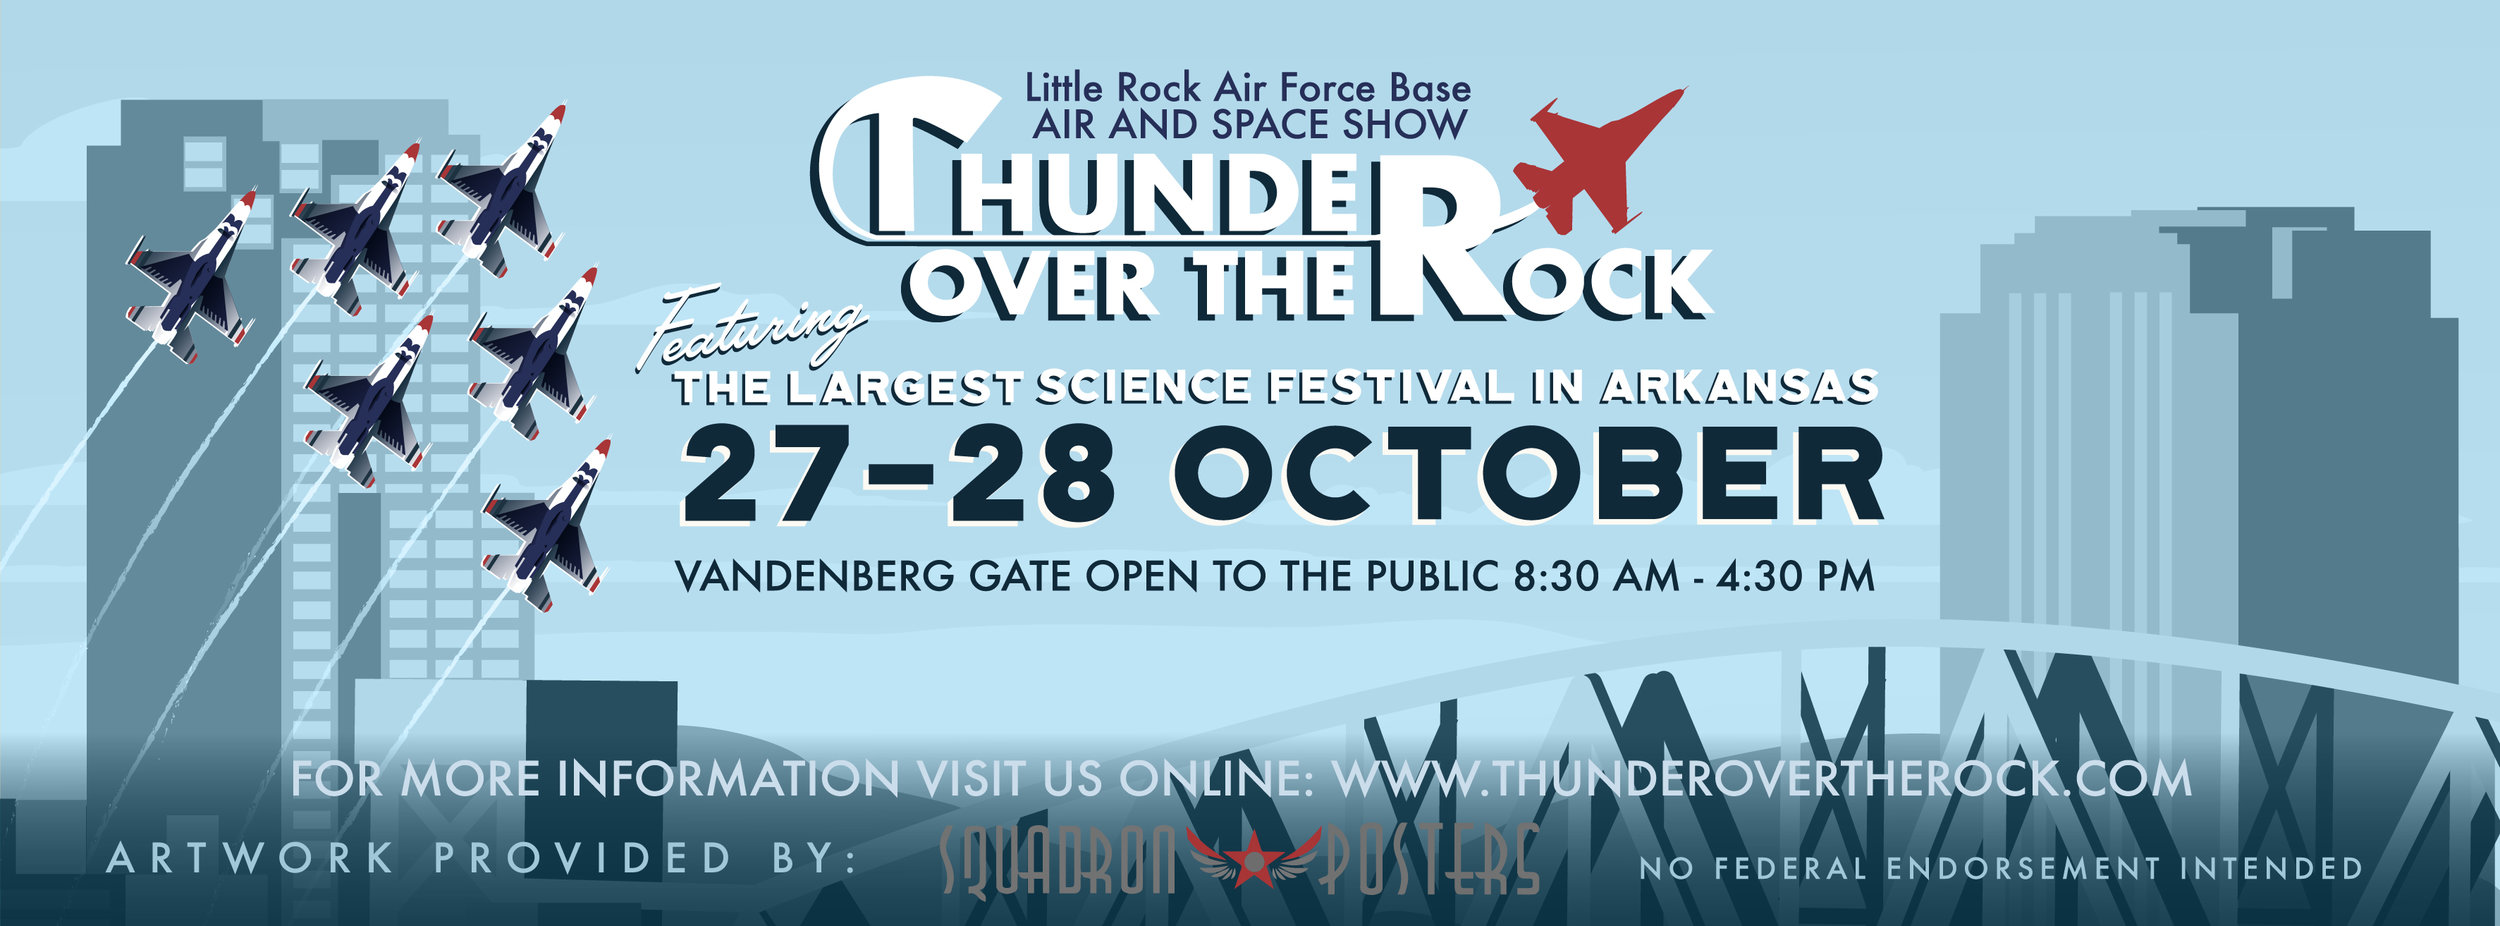 Little Rock AFB Thunder Over the Rock FB Cover Photo-01.jpg